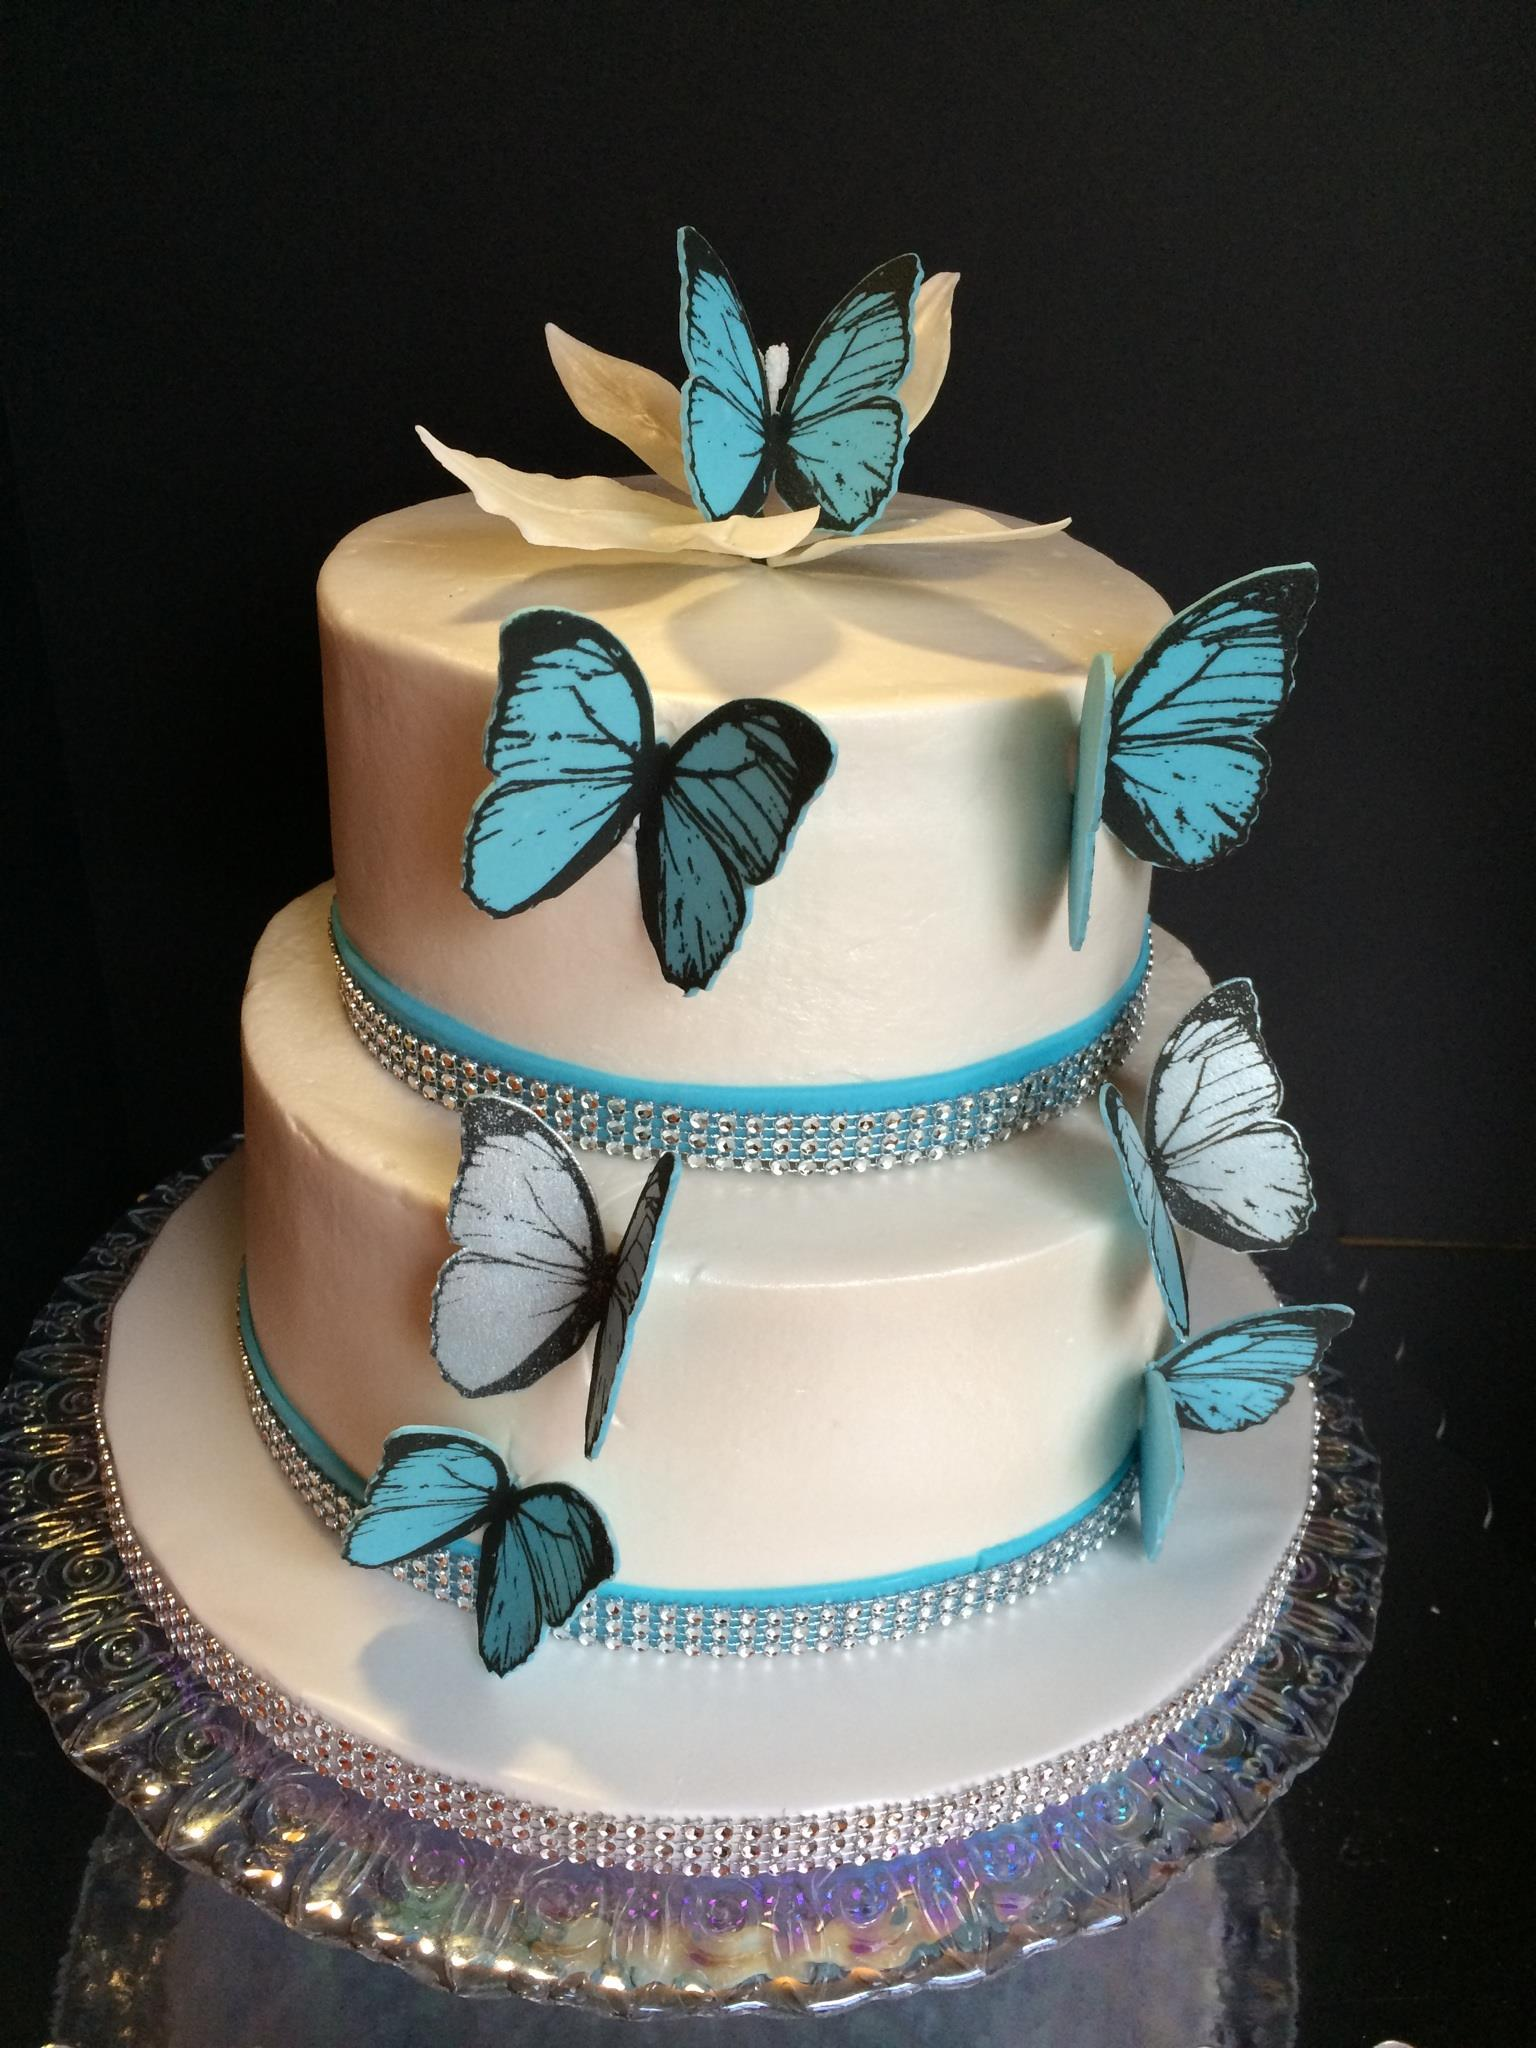 Cake Decorating Classes Fredericksburg Va : Wedding Cakes Cupcakes, Desserts Fredericksburg VA